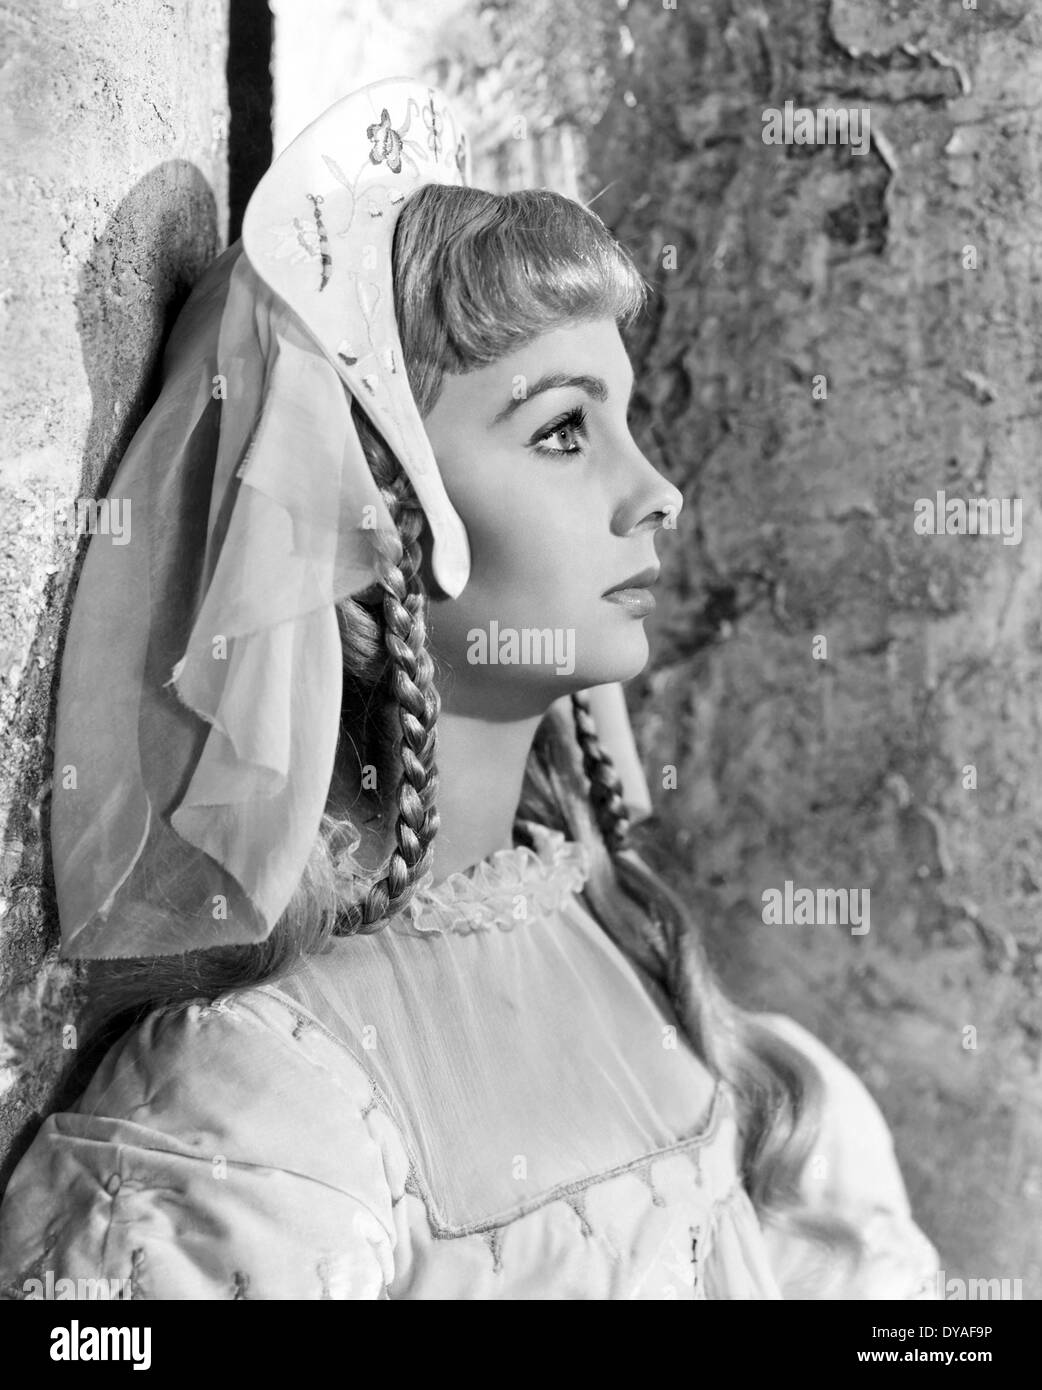 HAMLET 1948 Two Cities film with Jean Simmons as Ophelia - Stock Image